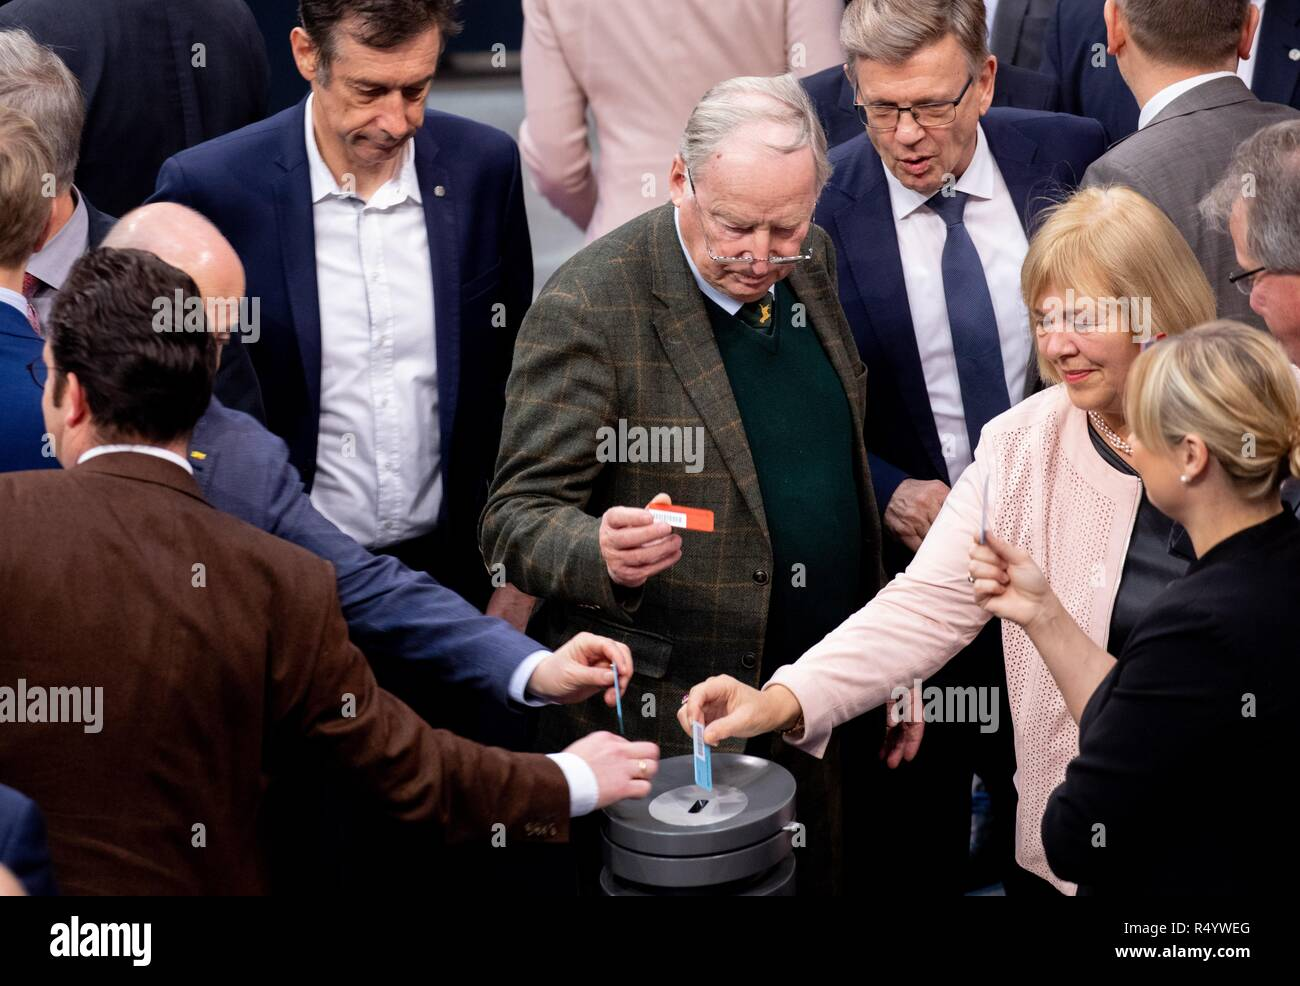 Berlin, Germany. 29th Nov, 2018. Alexander Gauland, leader of the AfD parliamentary group, takes part in the Bundestag's roll-call vote on the amendment to the Basic Law for school digitisation. Credit: Kay Nietfeld/dpa/Alamy Live News Stock Photo